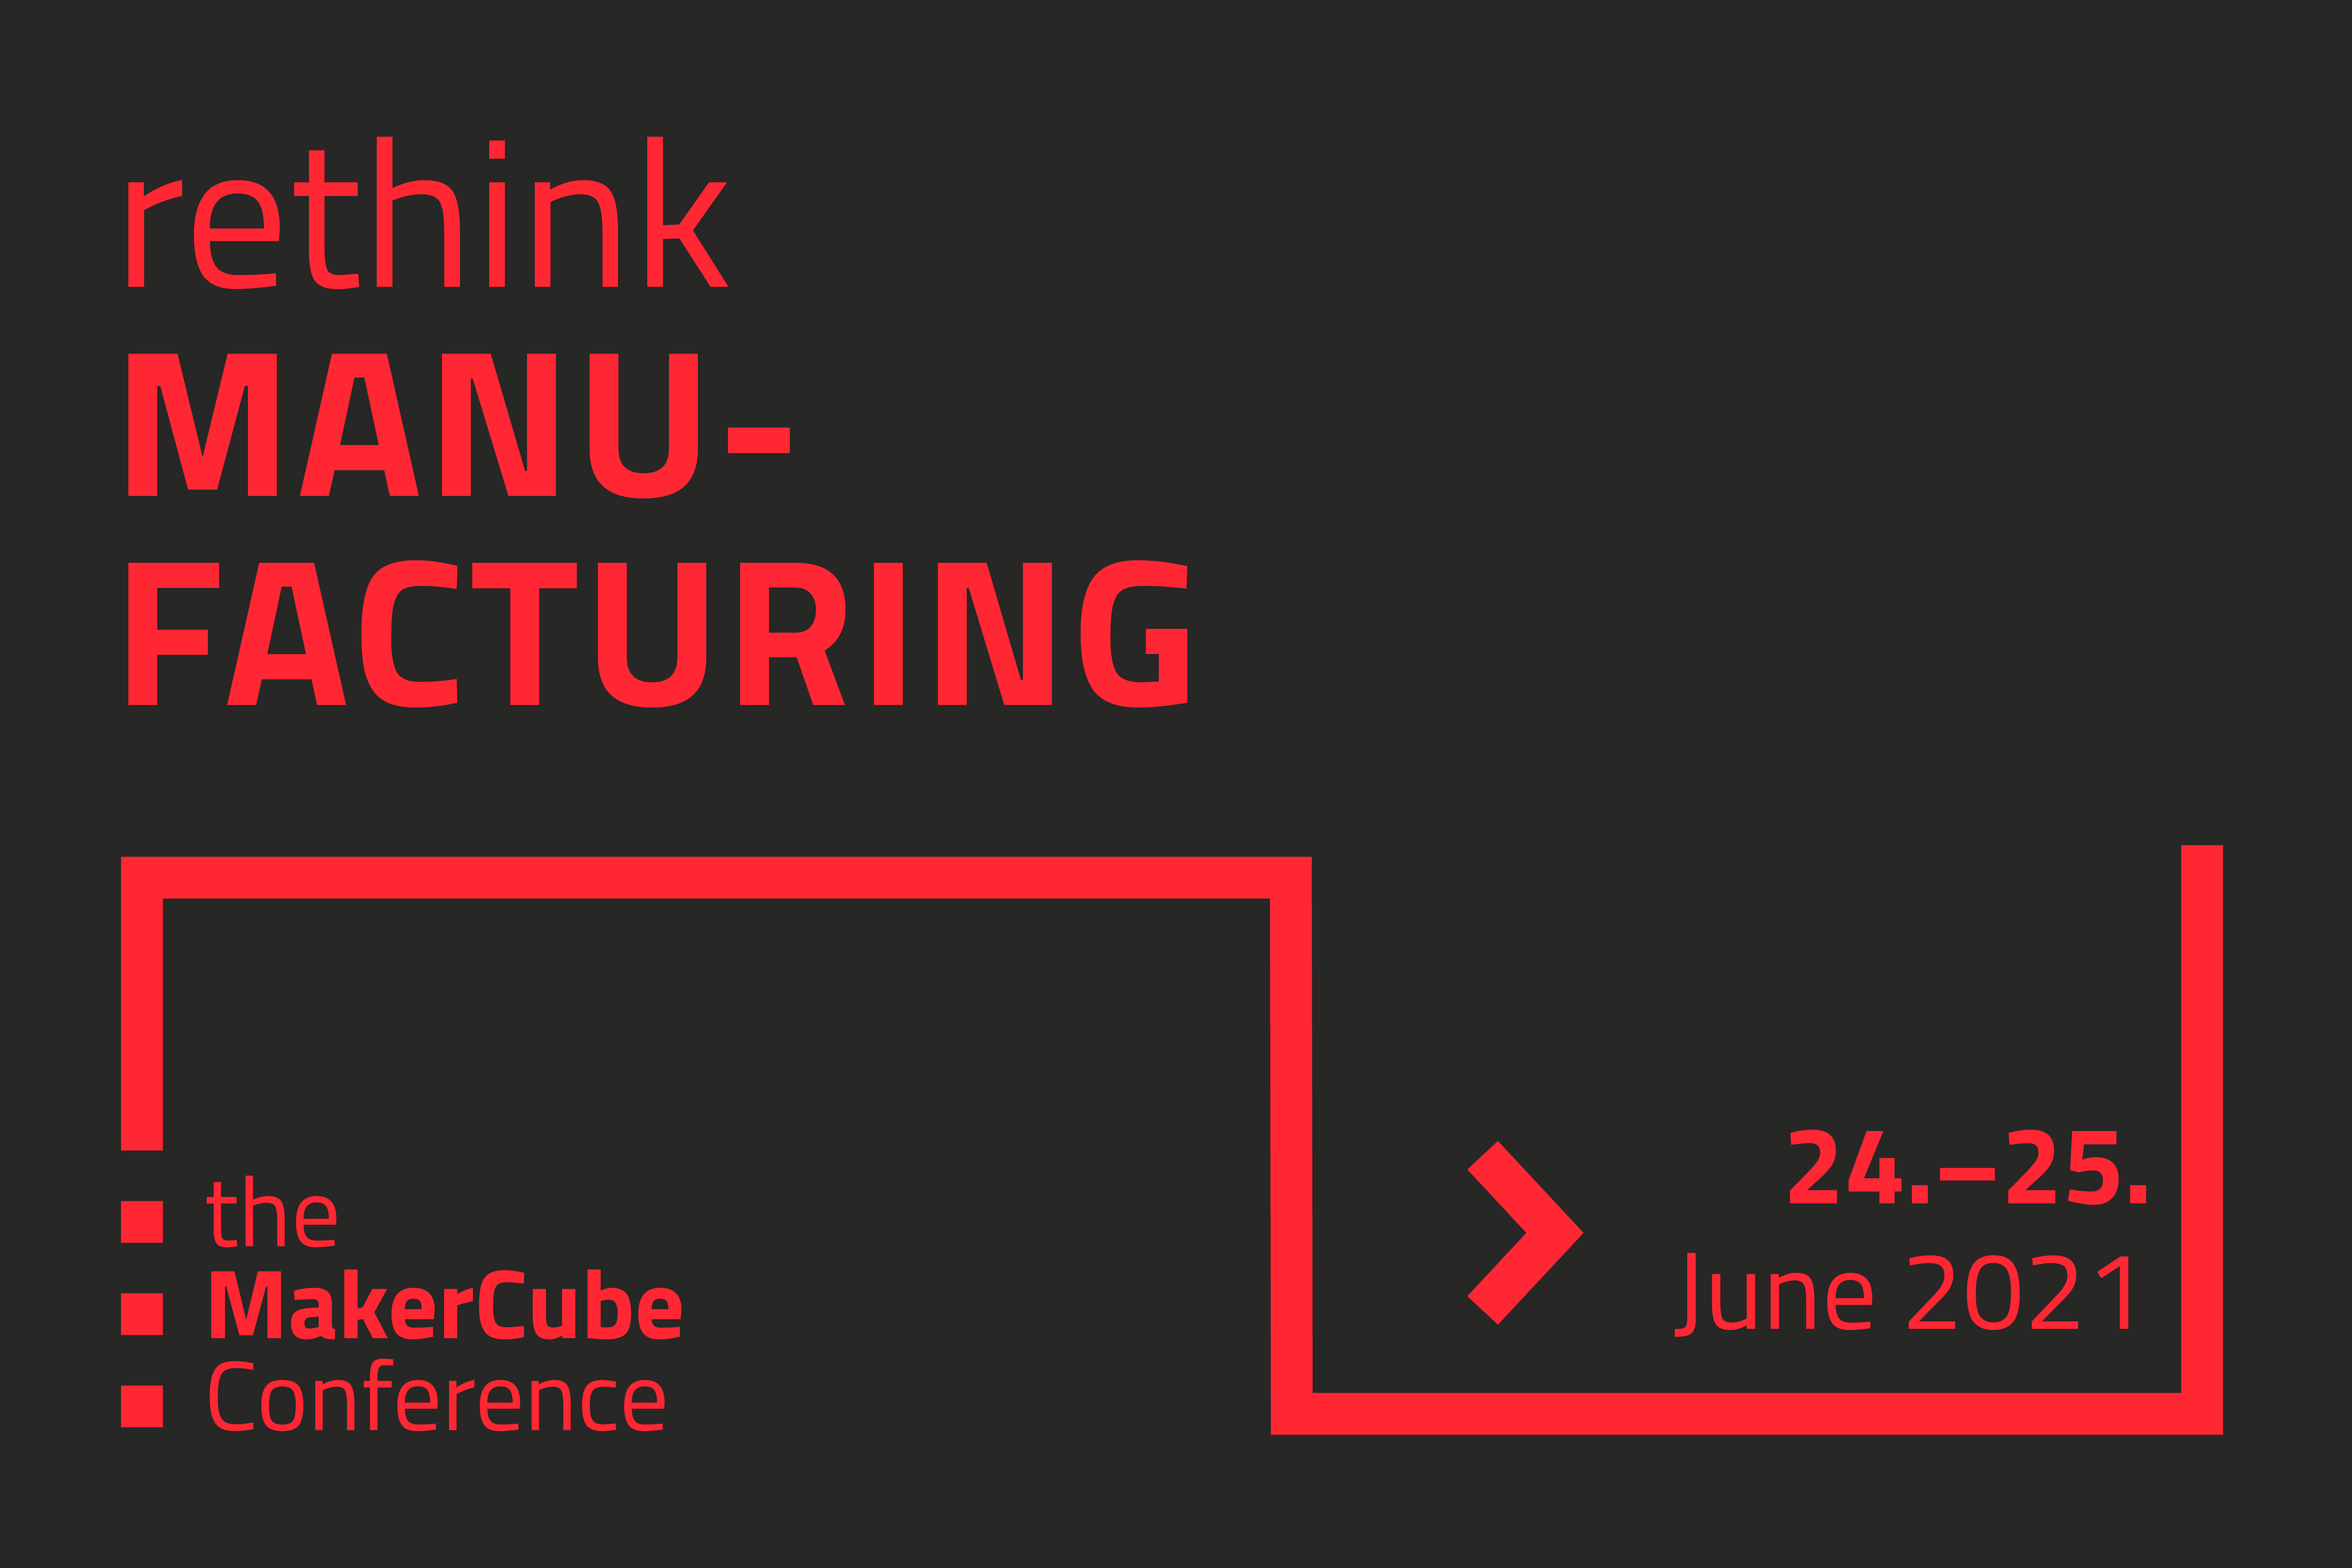 rethinkMANUFACTURING // the MakerCube Conference